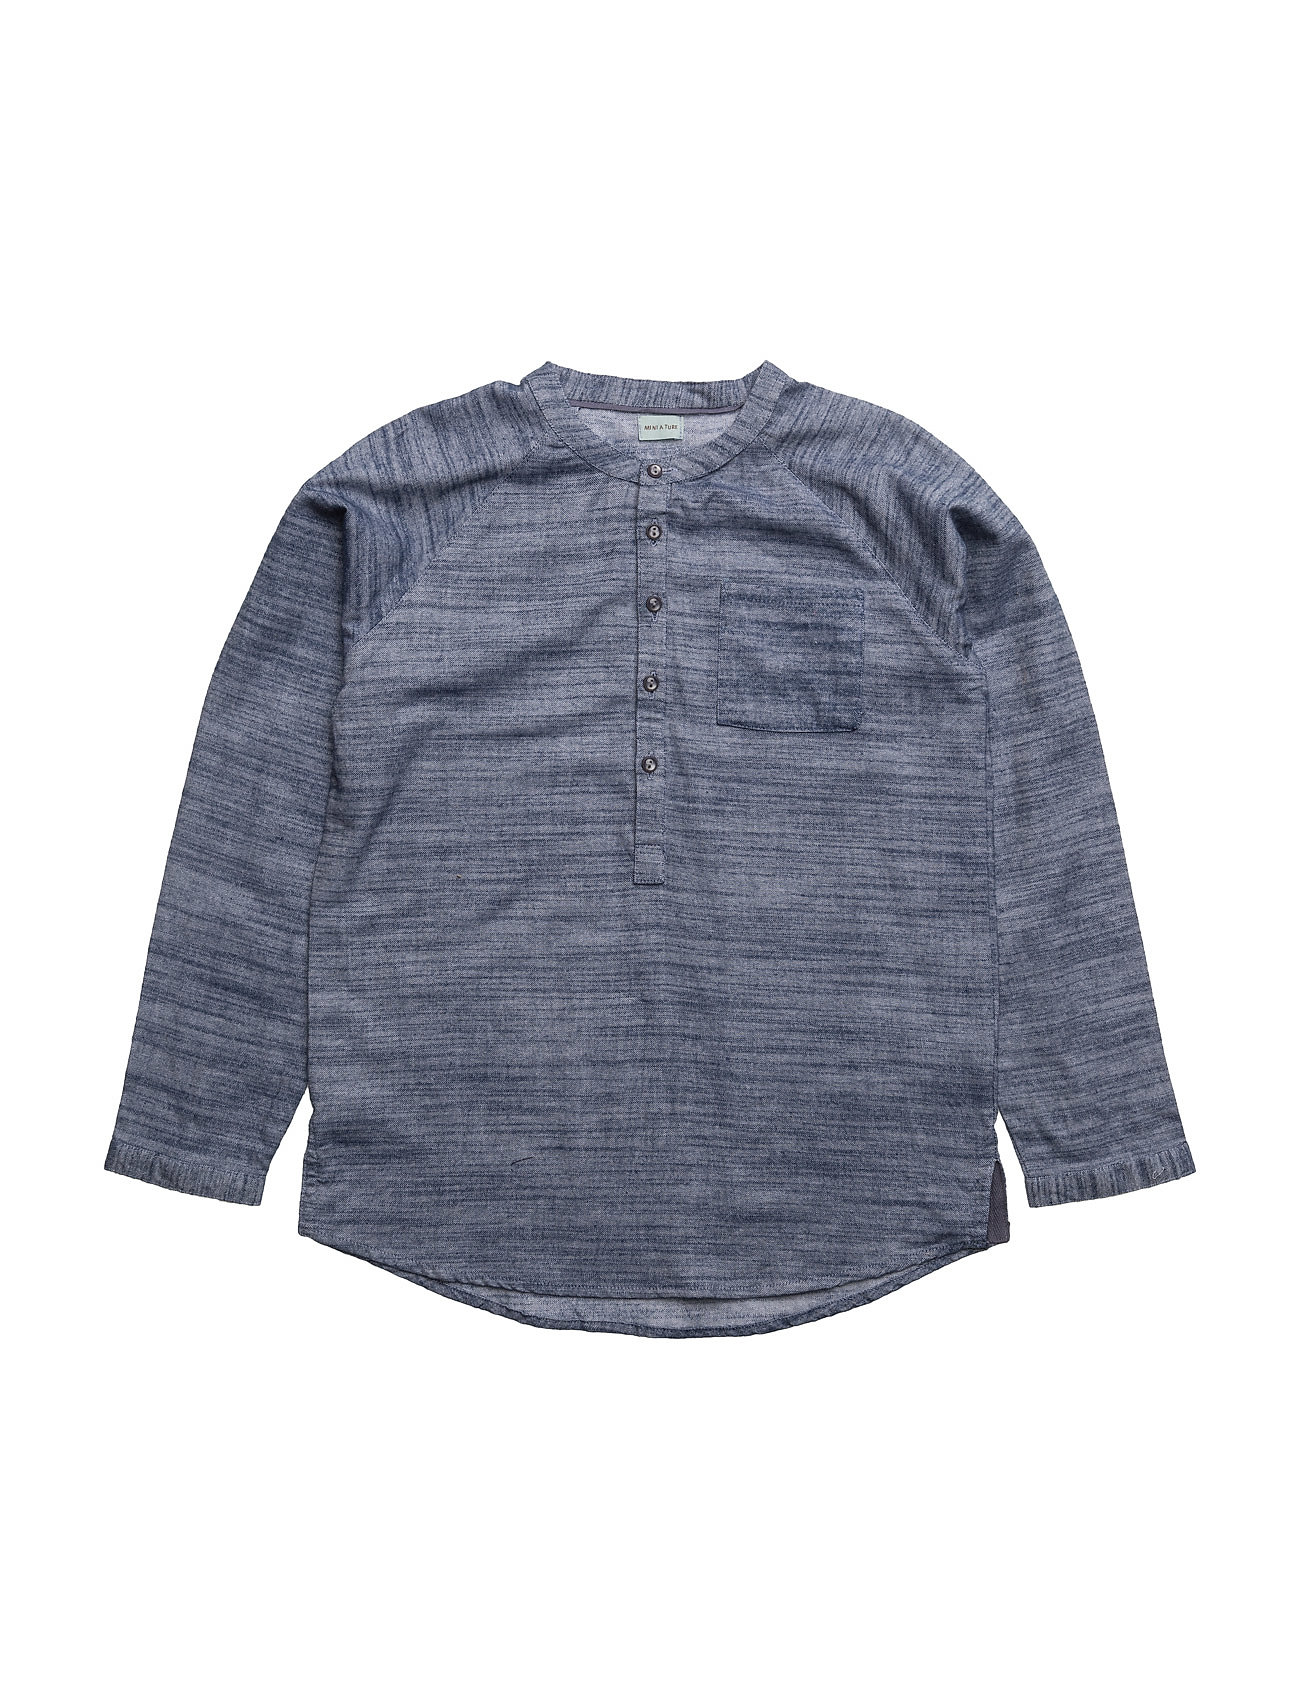 Mini A Ture Alton, BK Shirt